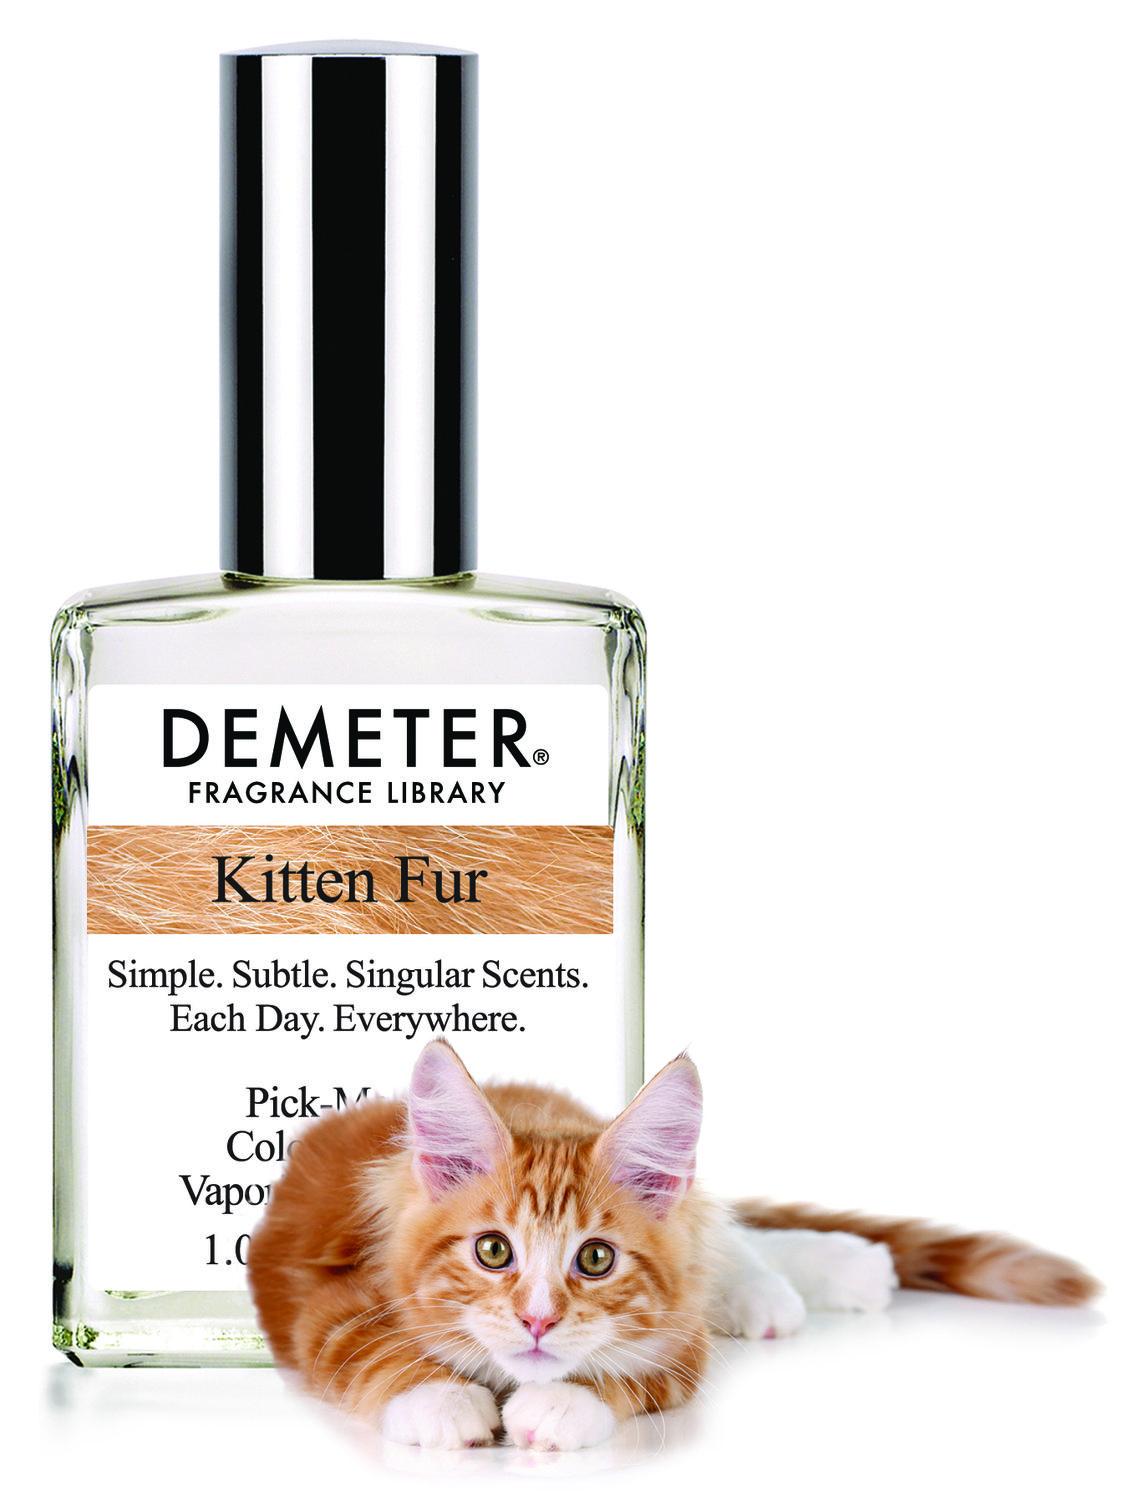 Catnip And Caviar Dreams Kitten Fur Perfume Is Here Demeter